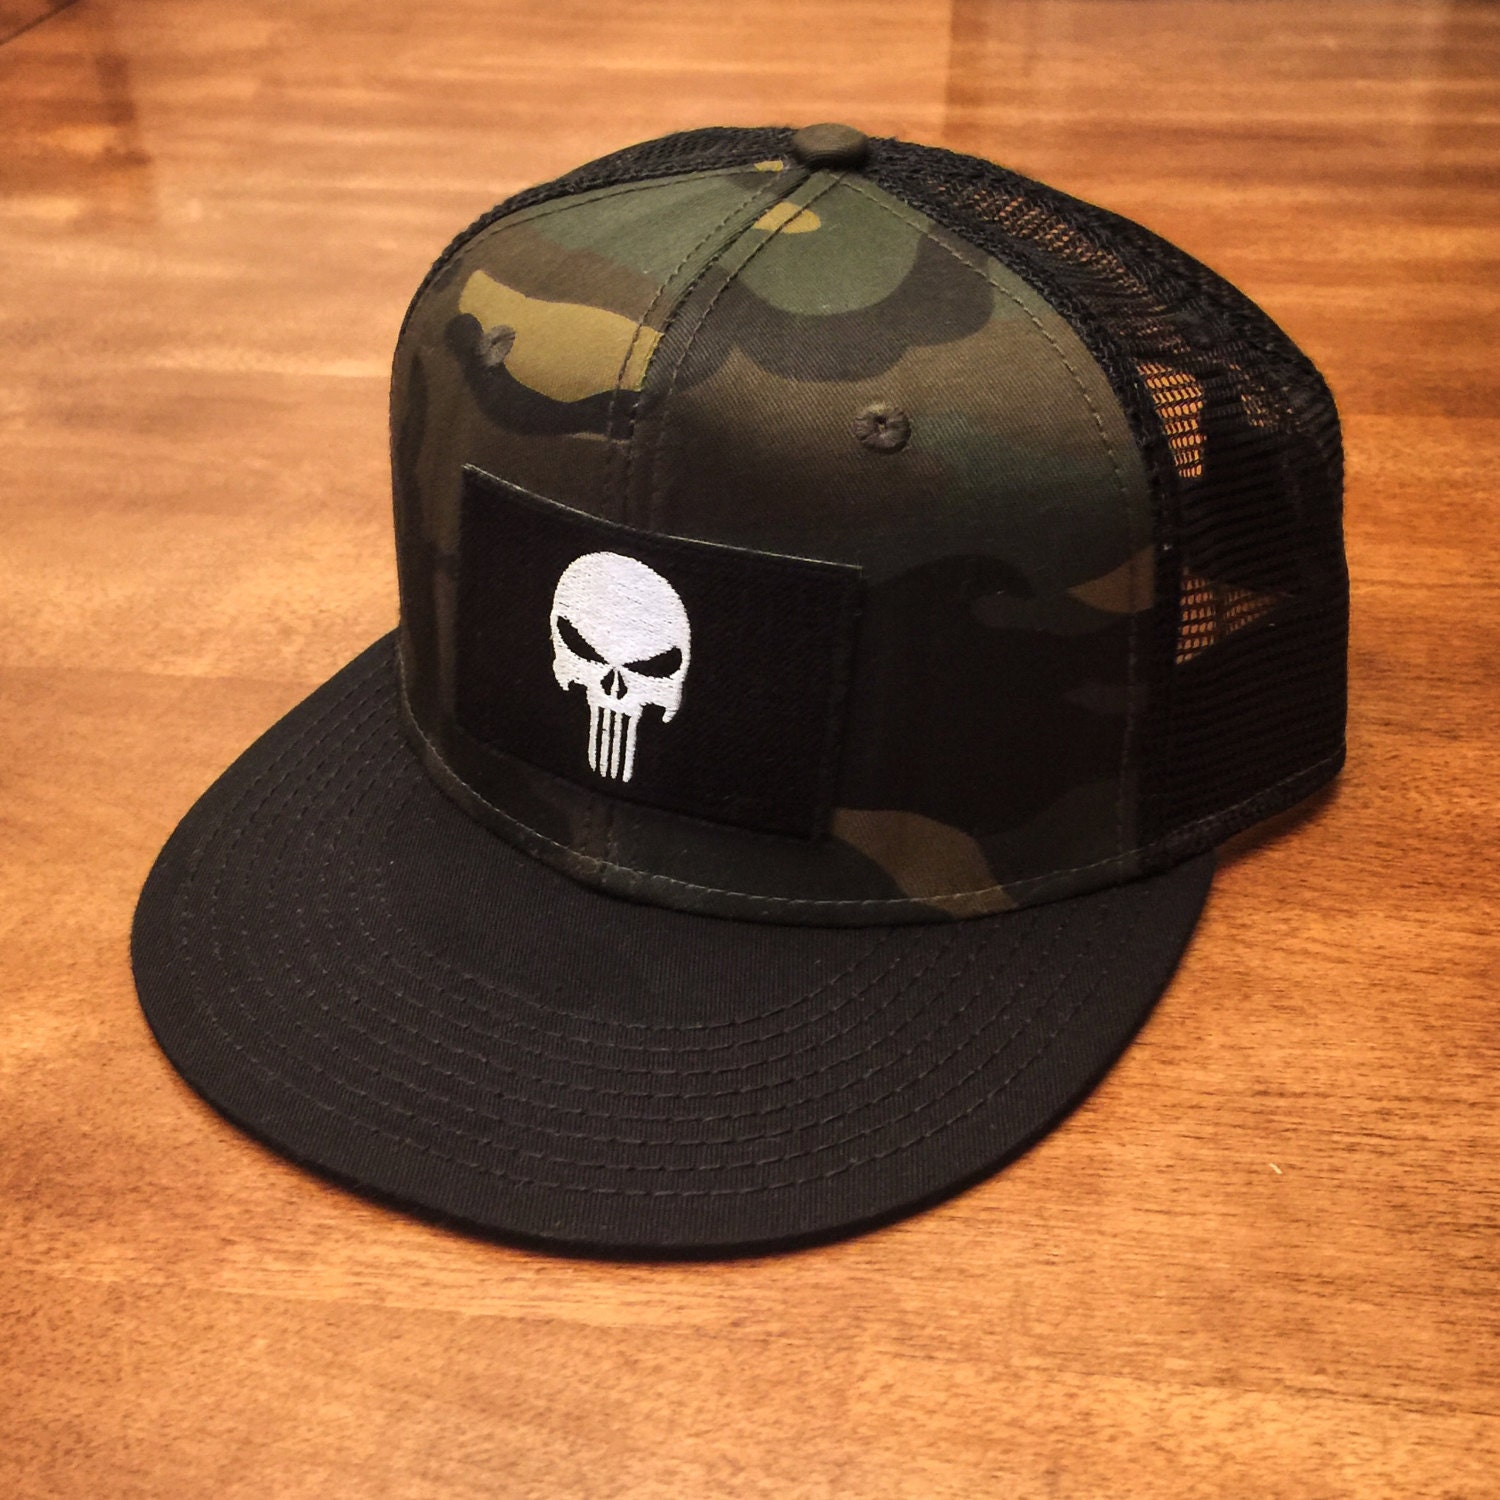 punisher hat in addition - photo #2